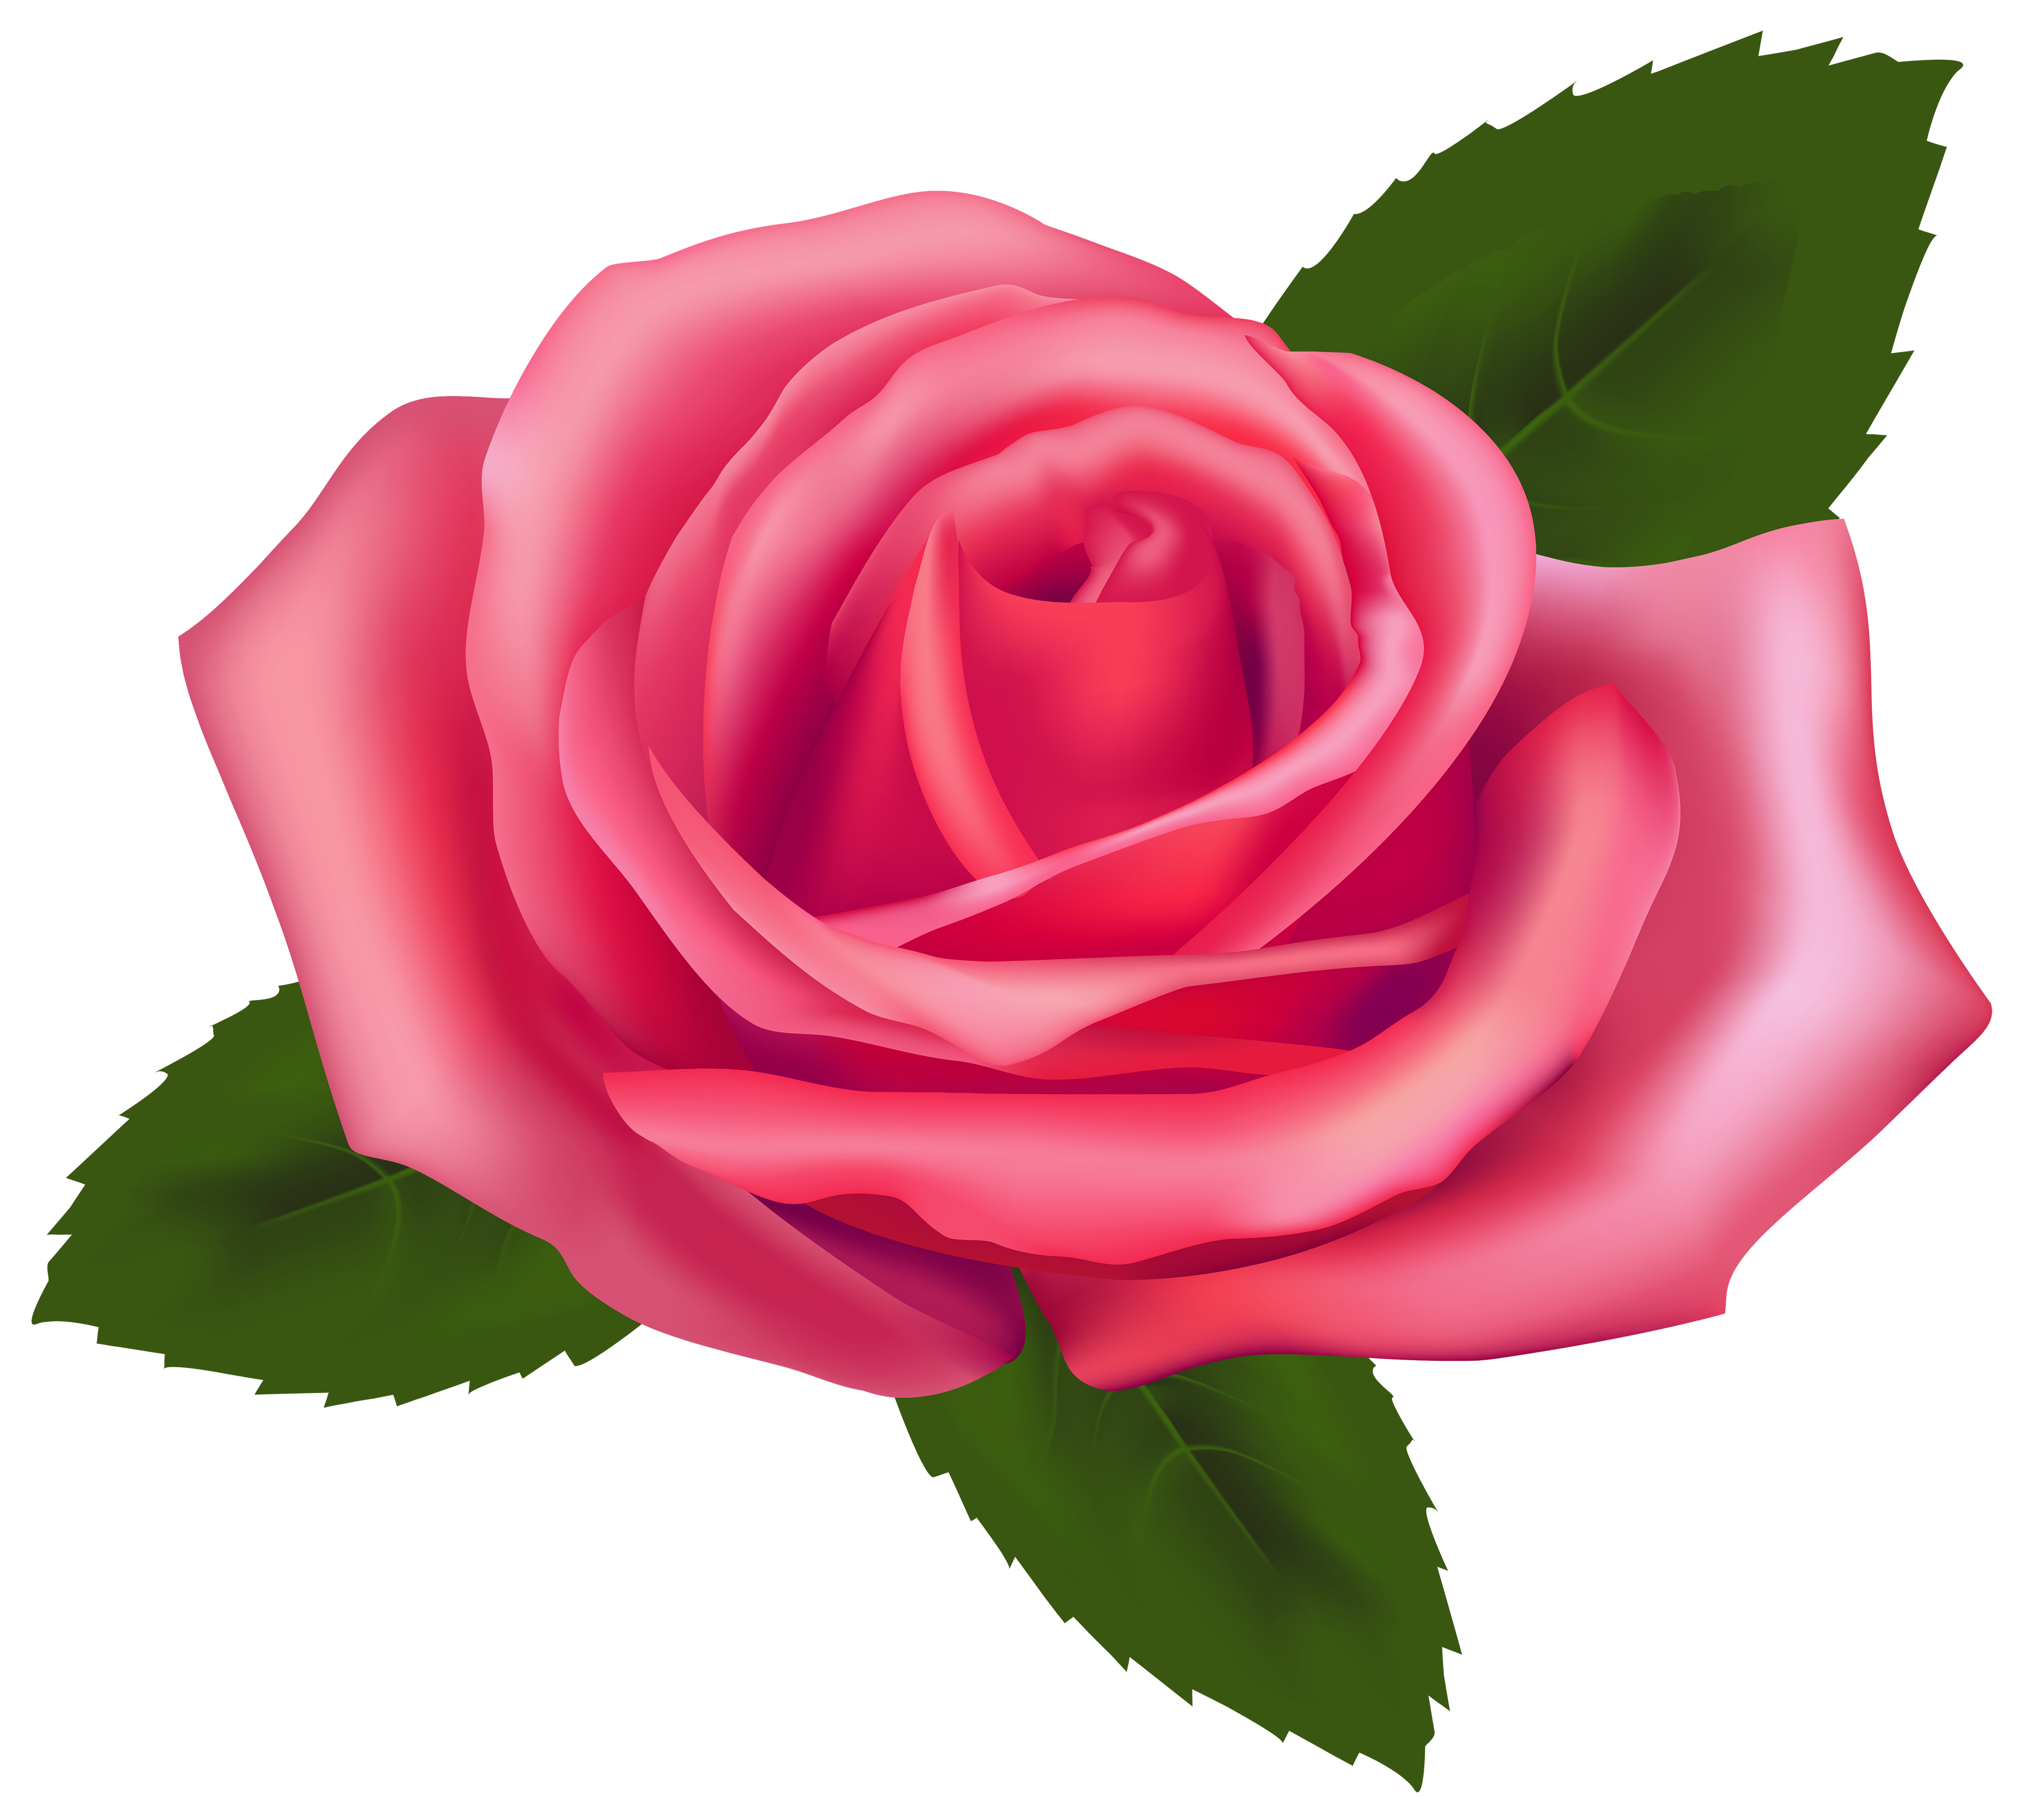 Download Rose Free Png Transparent Image And Clipart